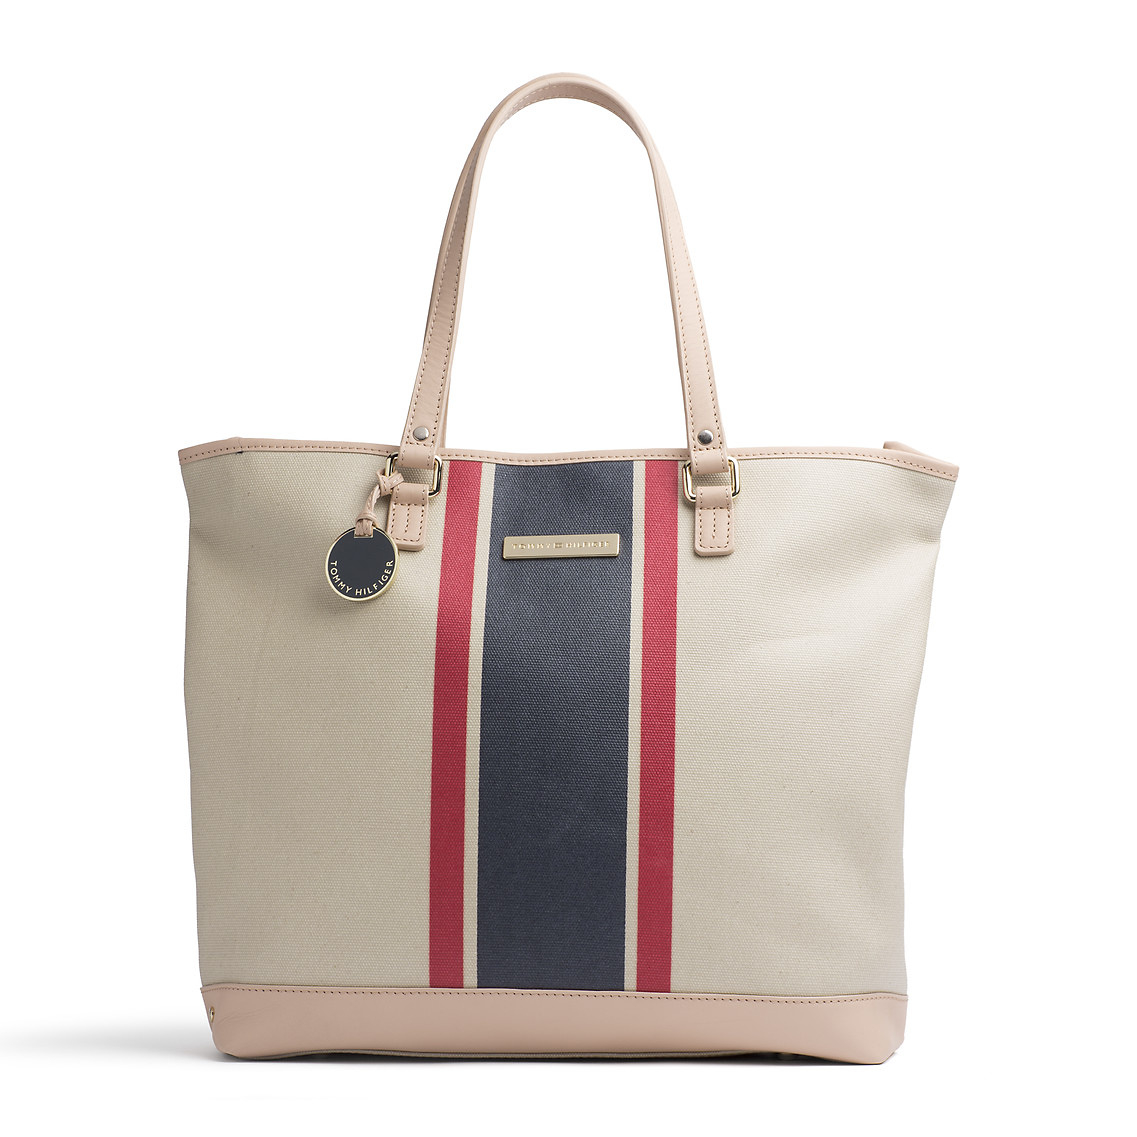 tommy hilfiger judie tote bag in beige natural lyst. Black Bedroom Furniture Sets. Home Design Ideas